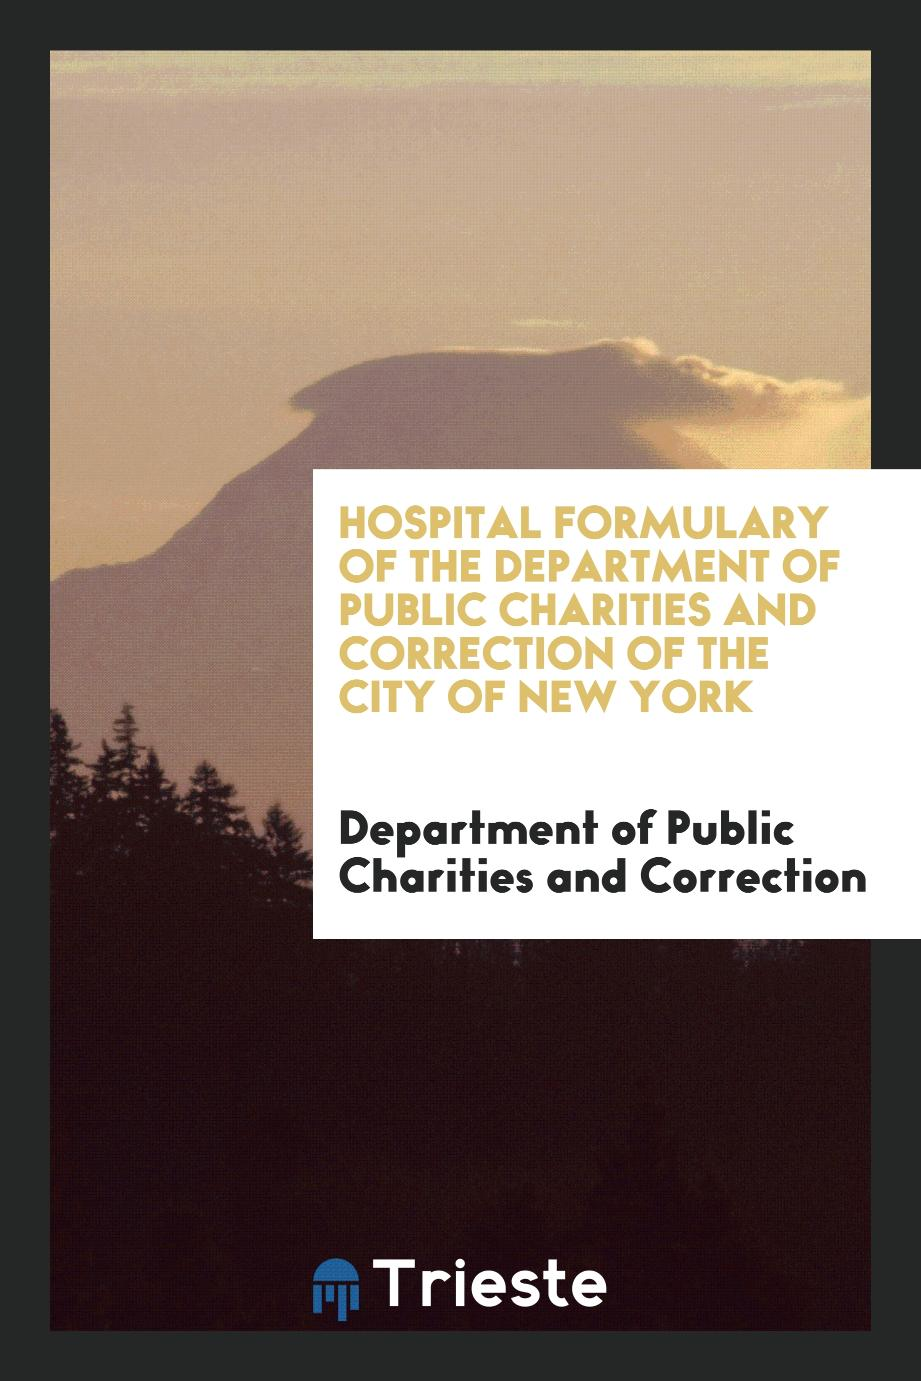 Hospital Formulary of the Department of Public Charities and Correction of the City of New York